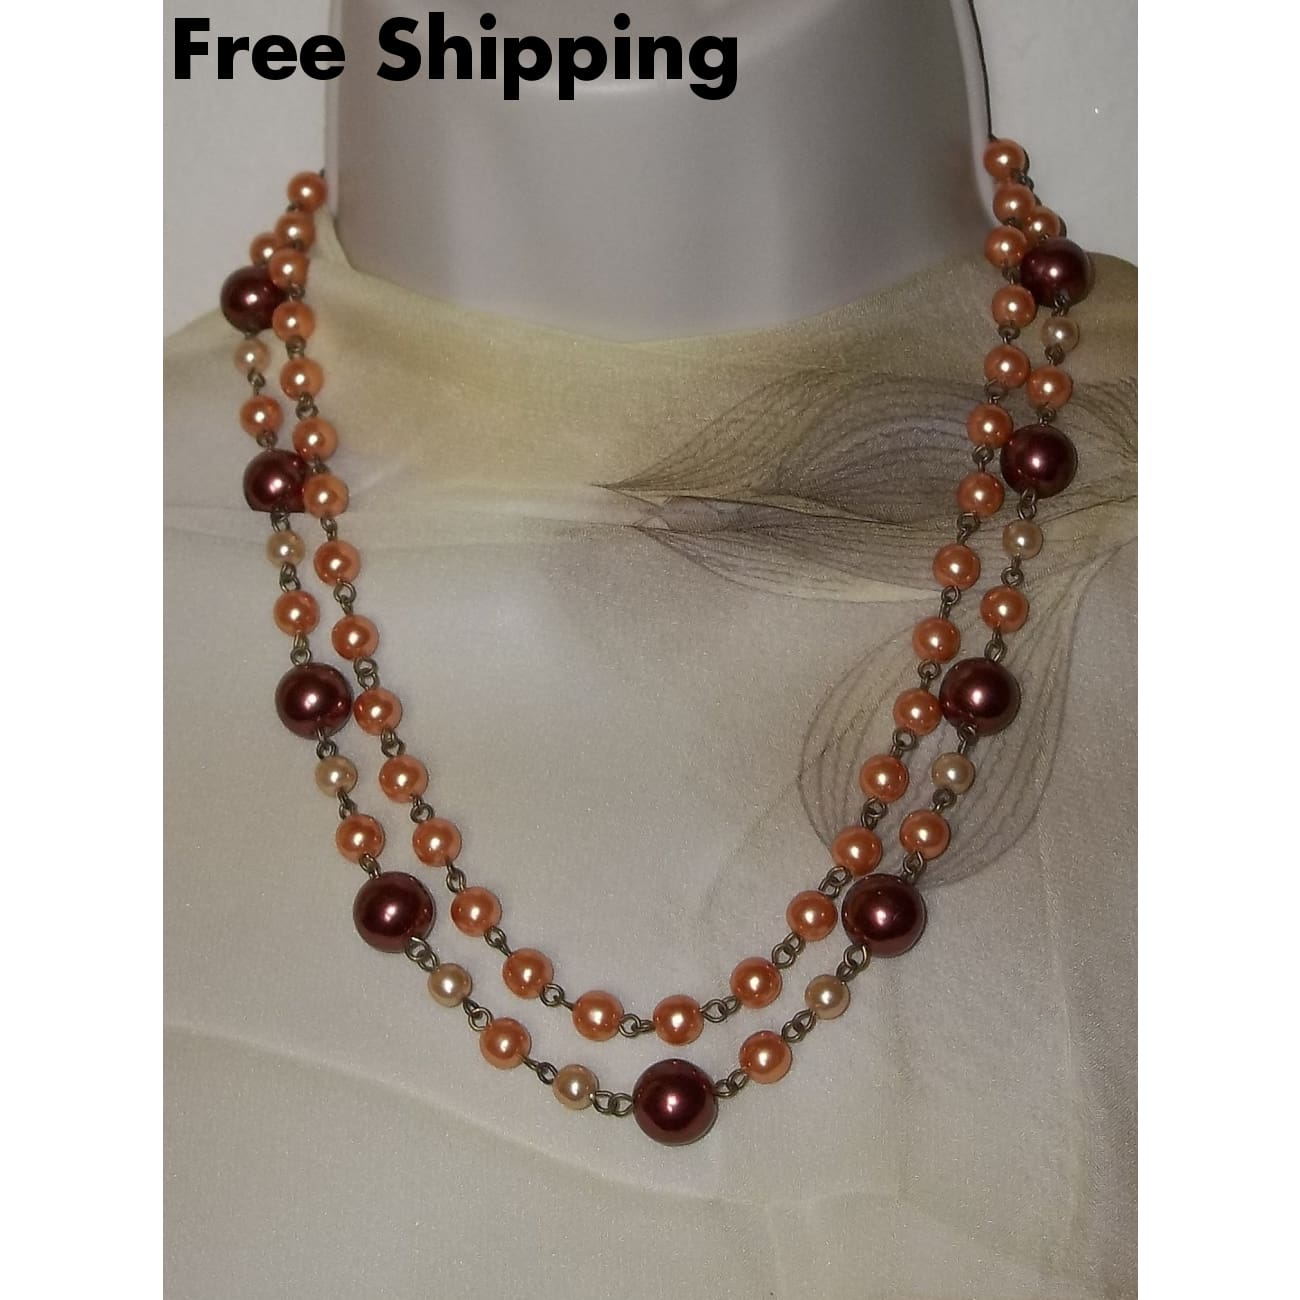 Vintage Copper Peach & Champagne Pearl Beaded Bronze Double Strand 20 - 22 Adjustable Necklace - Vintage